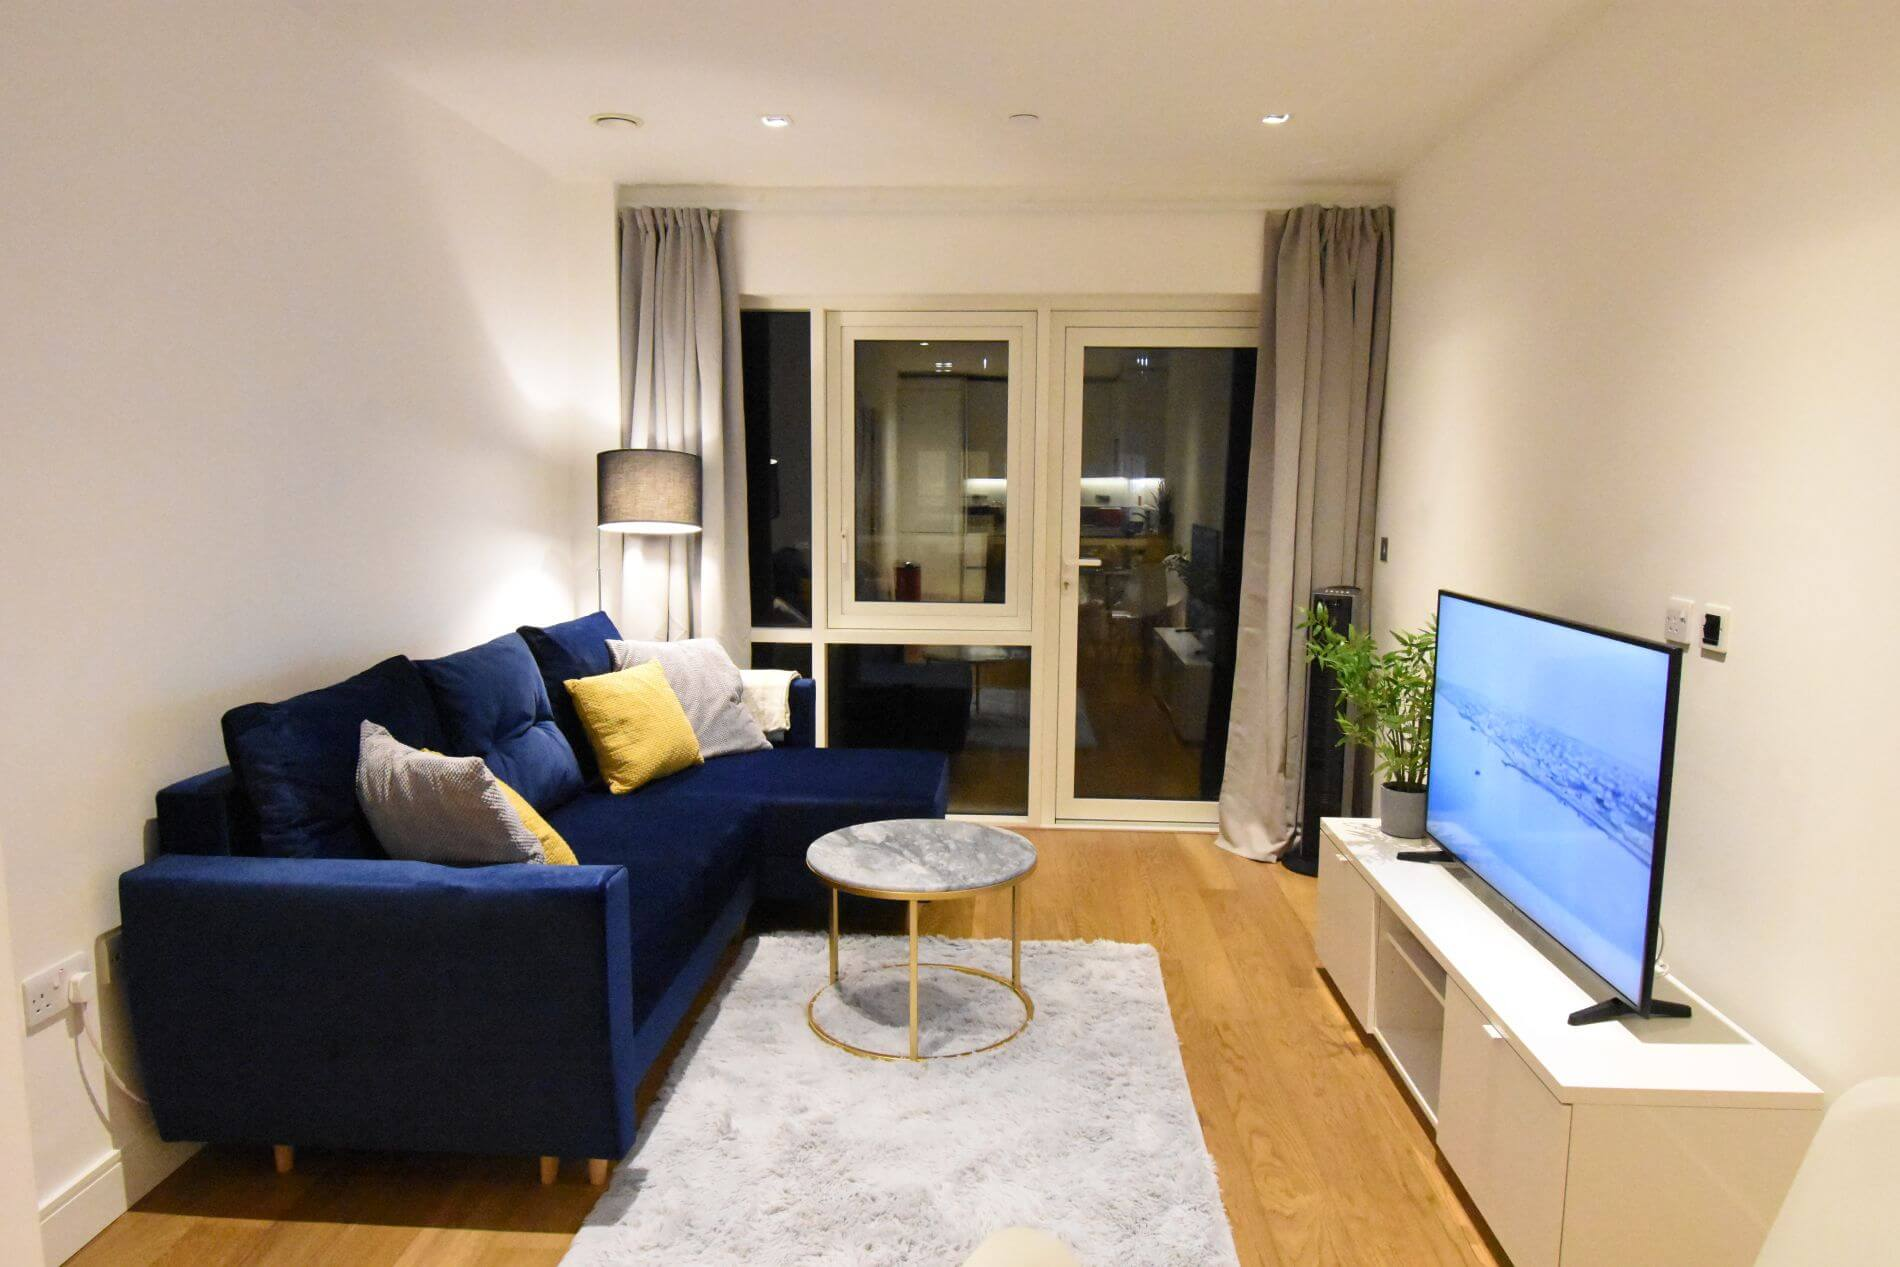 Short term 1 bedroom serviced apartment in Ealing, London